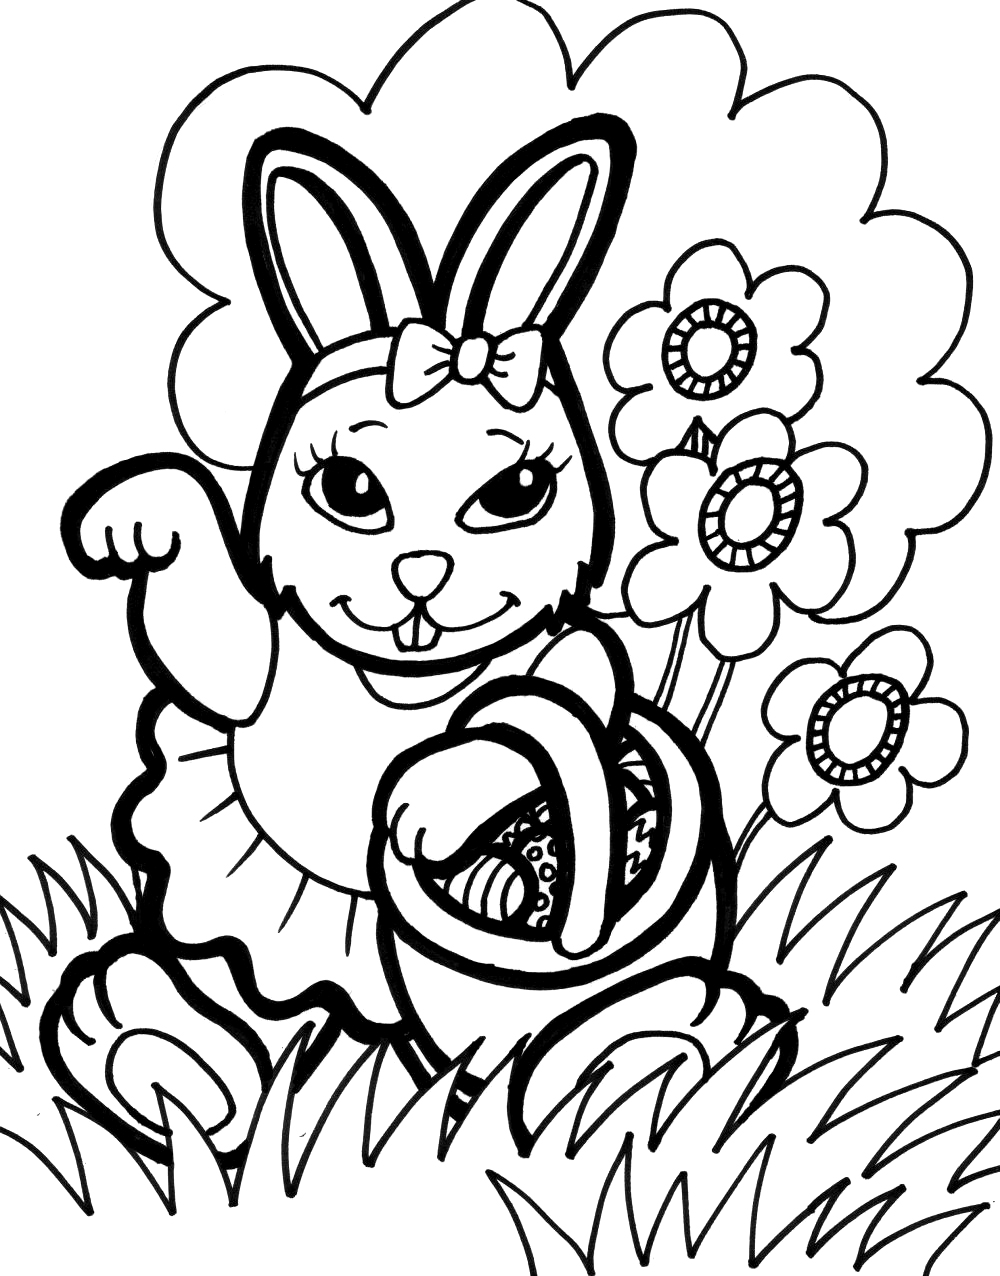 coloring pages of bunny rabbits free printable rabbit coloring pages for kids pages rabbits bunny of coloring